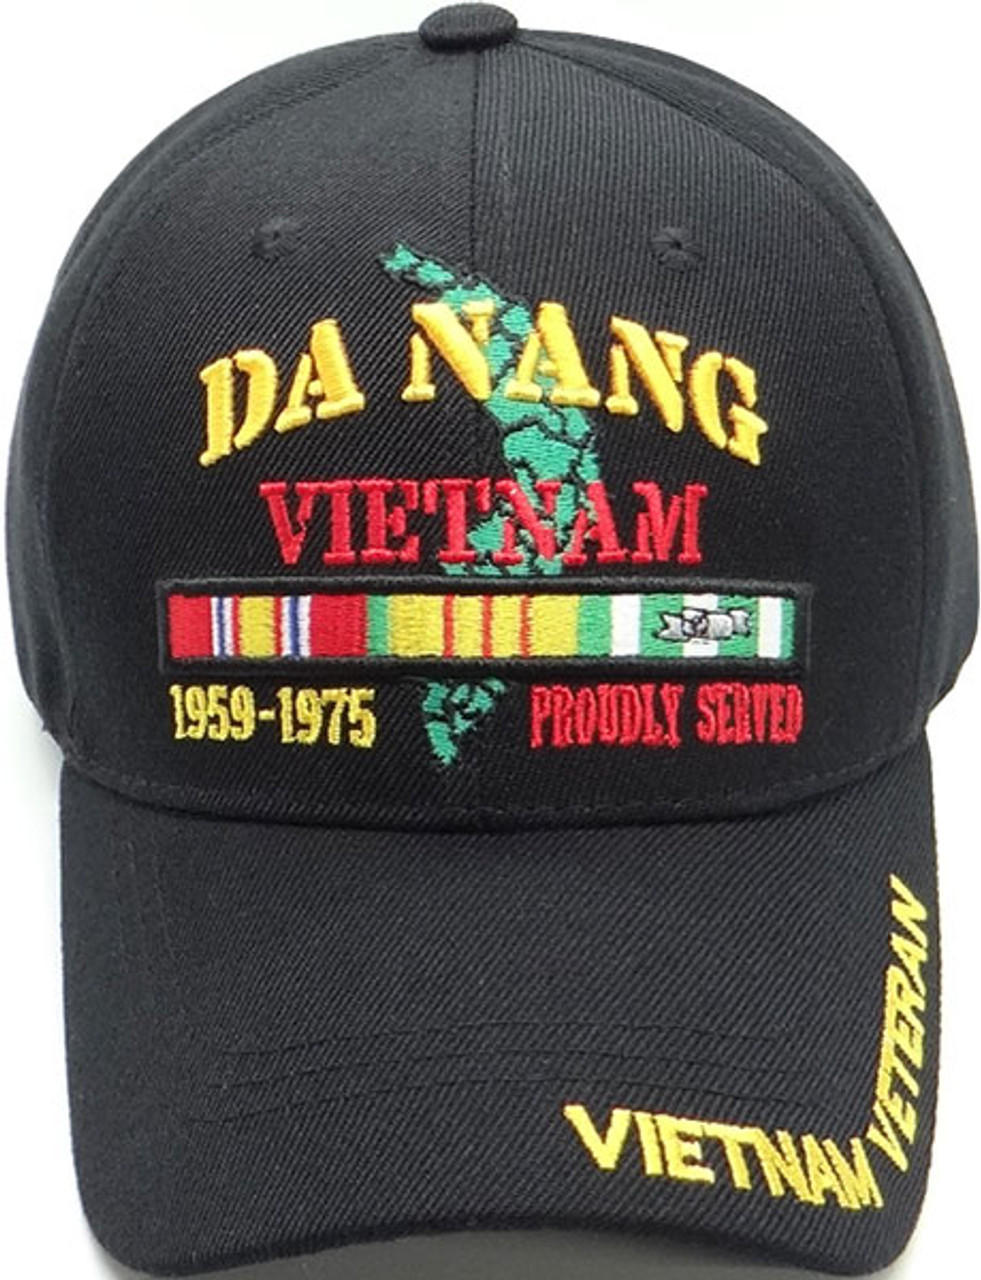 U.S NAVY VIETNAM VETERAN RETIRED HAT U.S MILITARY OFFICIAL BALL CAP U.S.A MADE